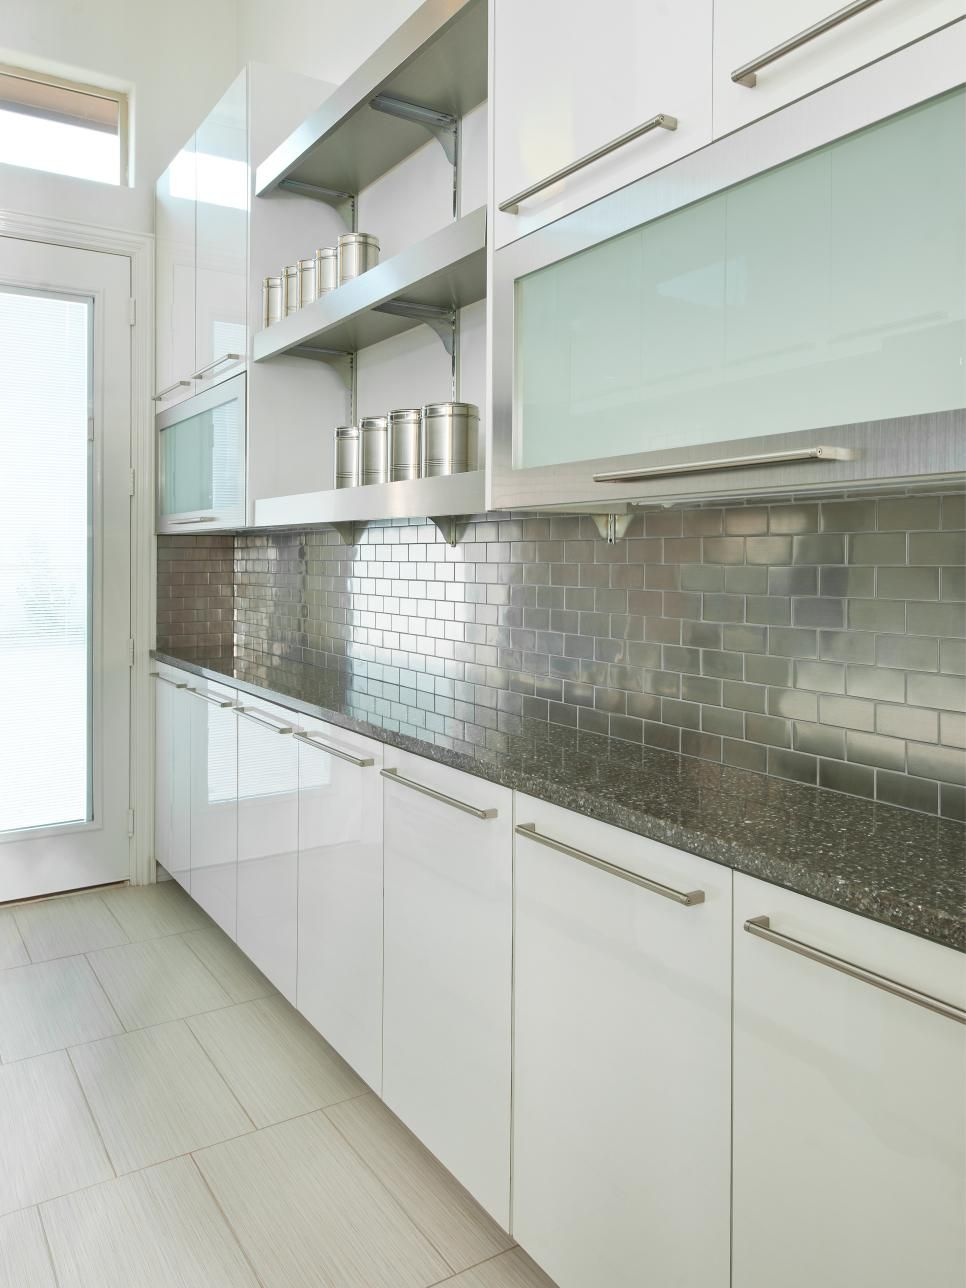 Merveilleux 15 Ways To Modernize Your Homeu0027s Style. Subway Tile BacksplashKitchen ...